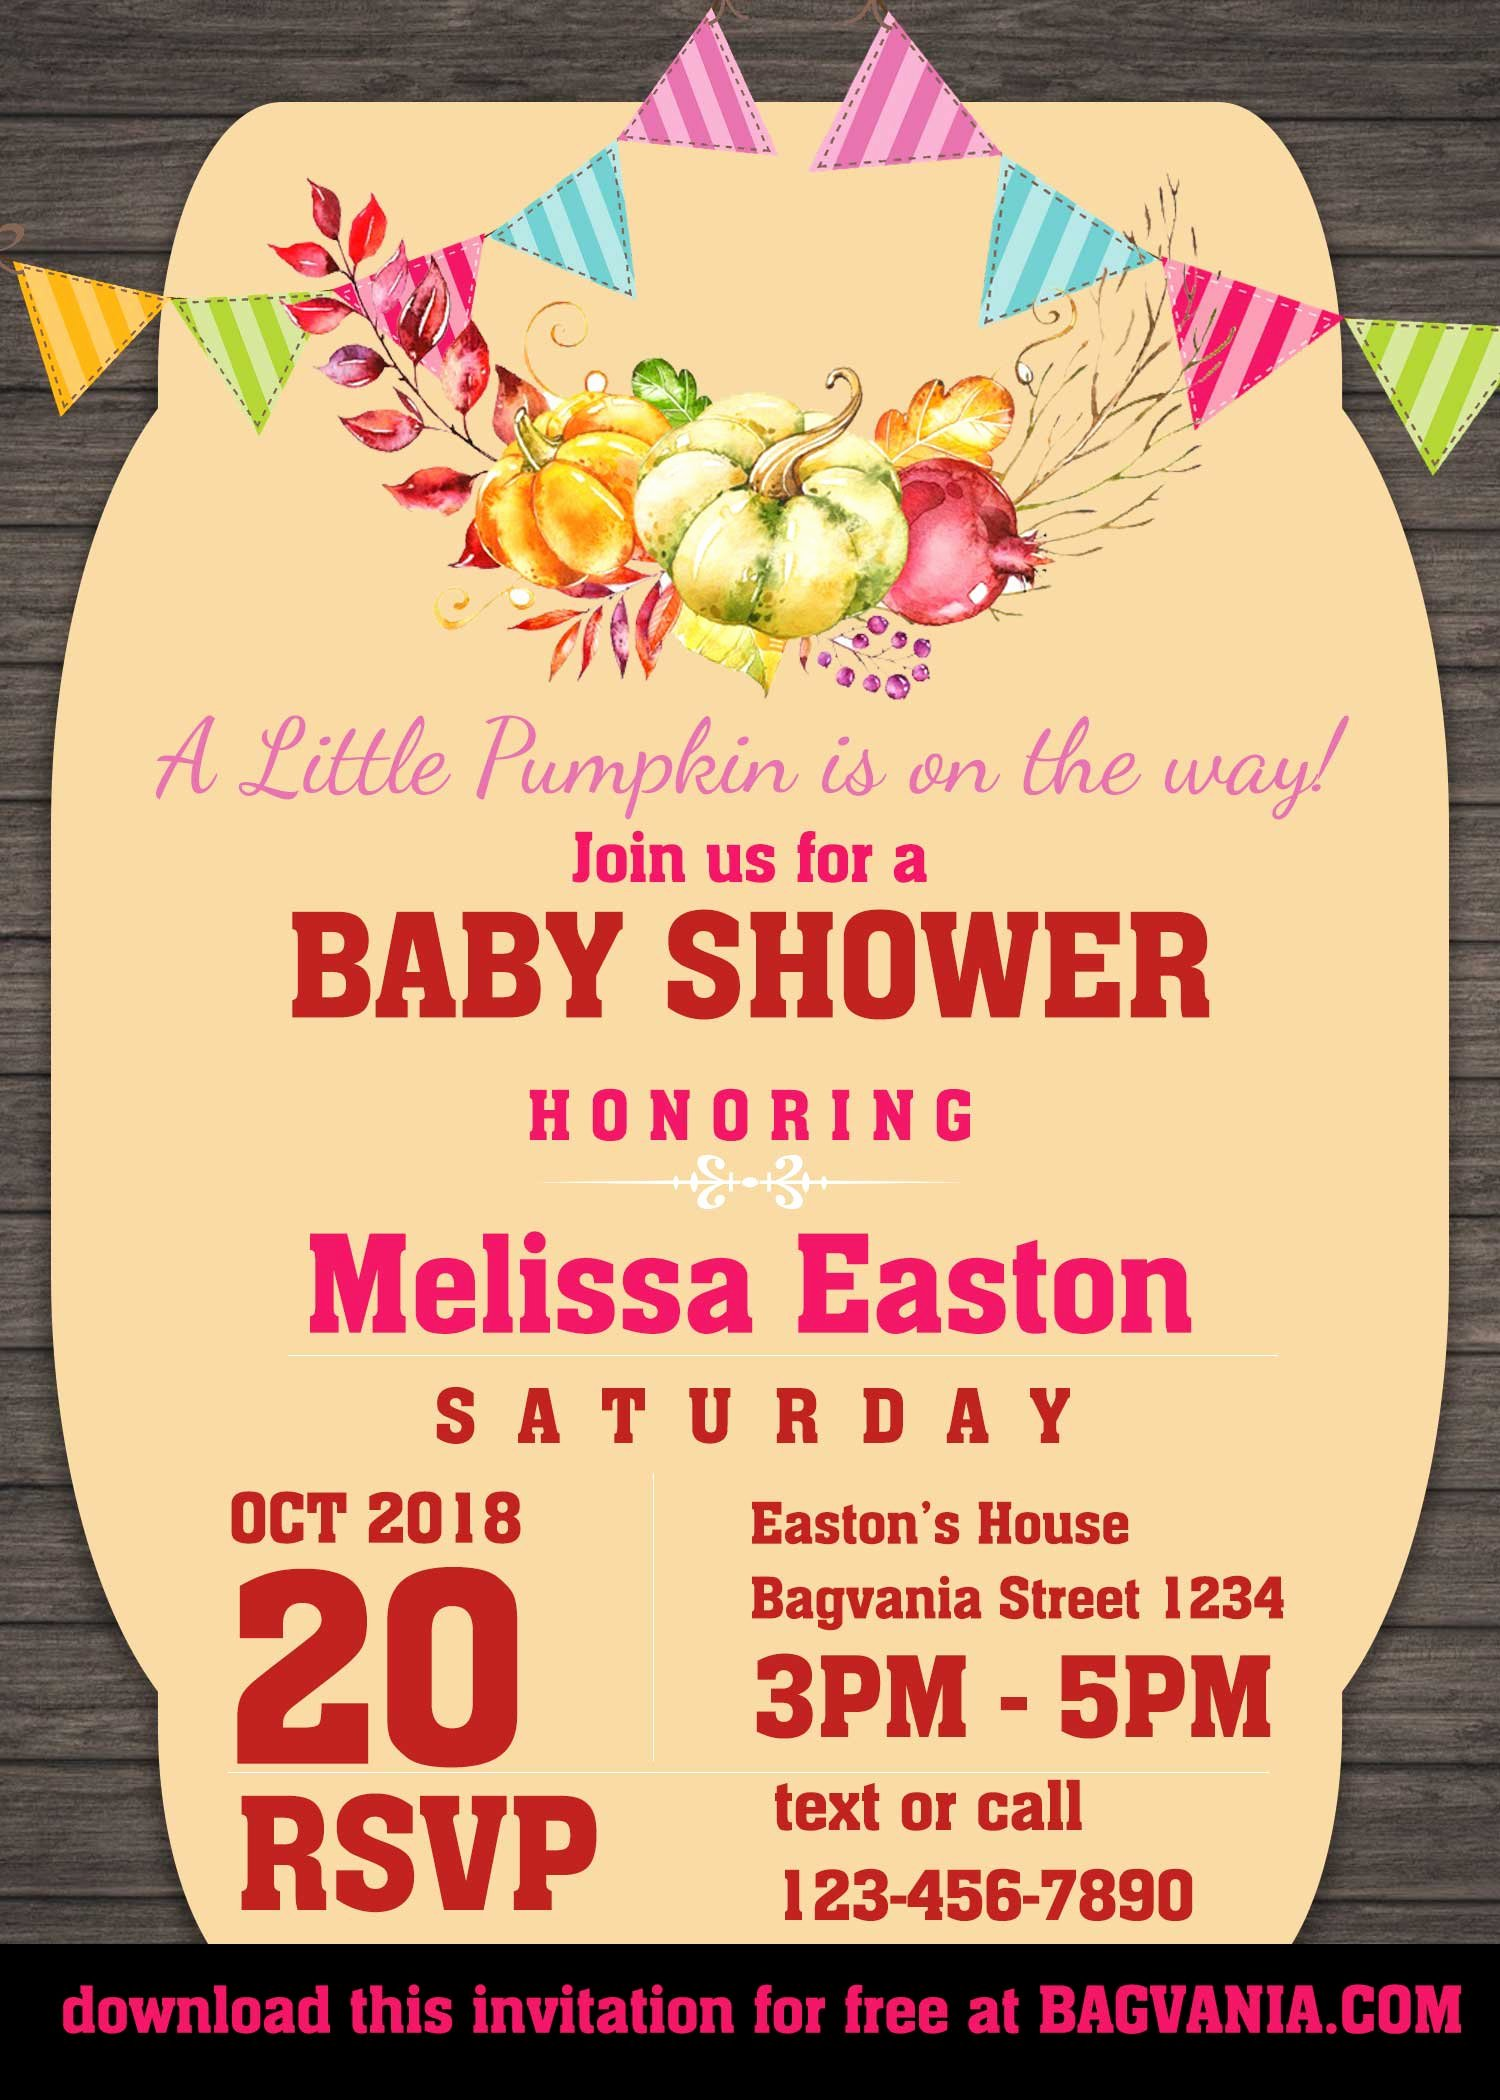 Free Baby Shower Invitation Templates Awesome Free Pumpkin Baby Shower Invitation Templates – Free